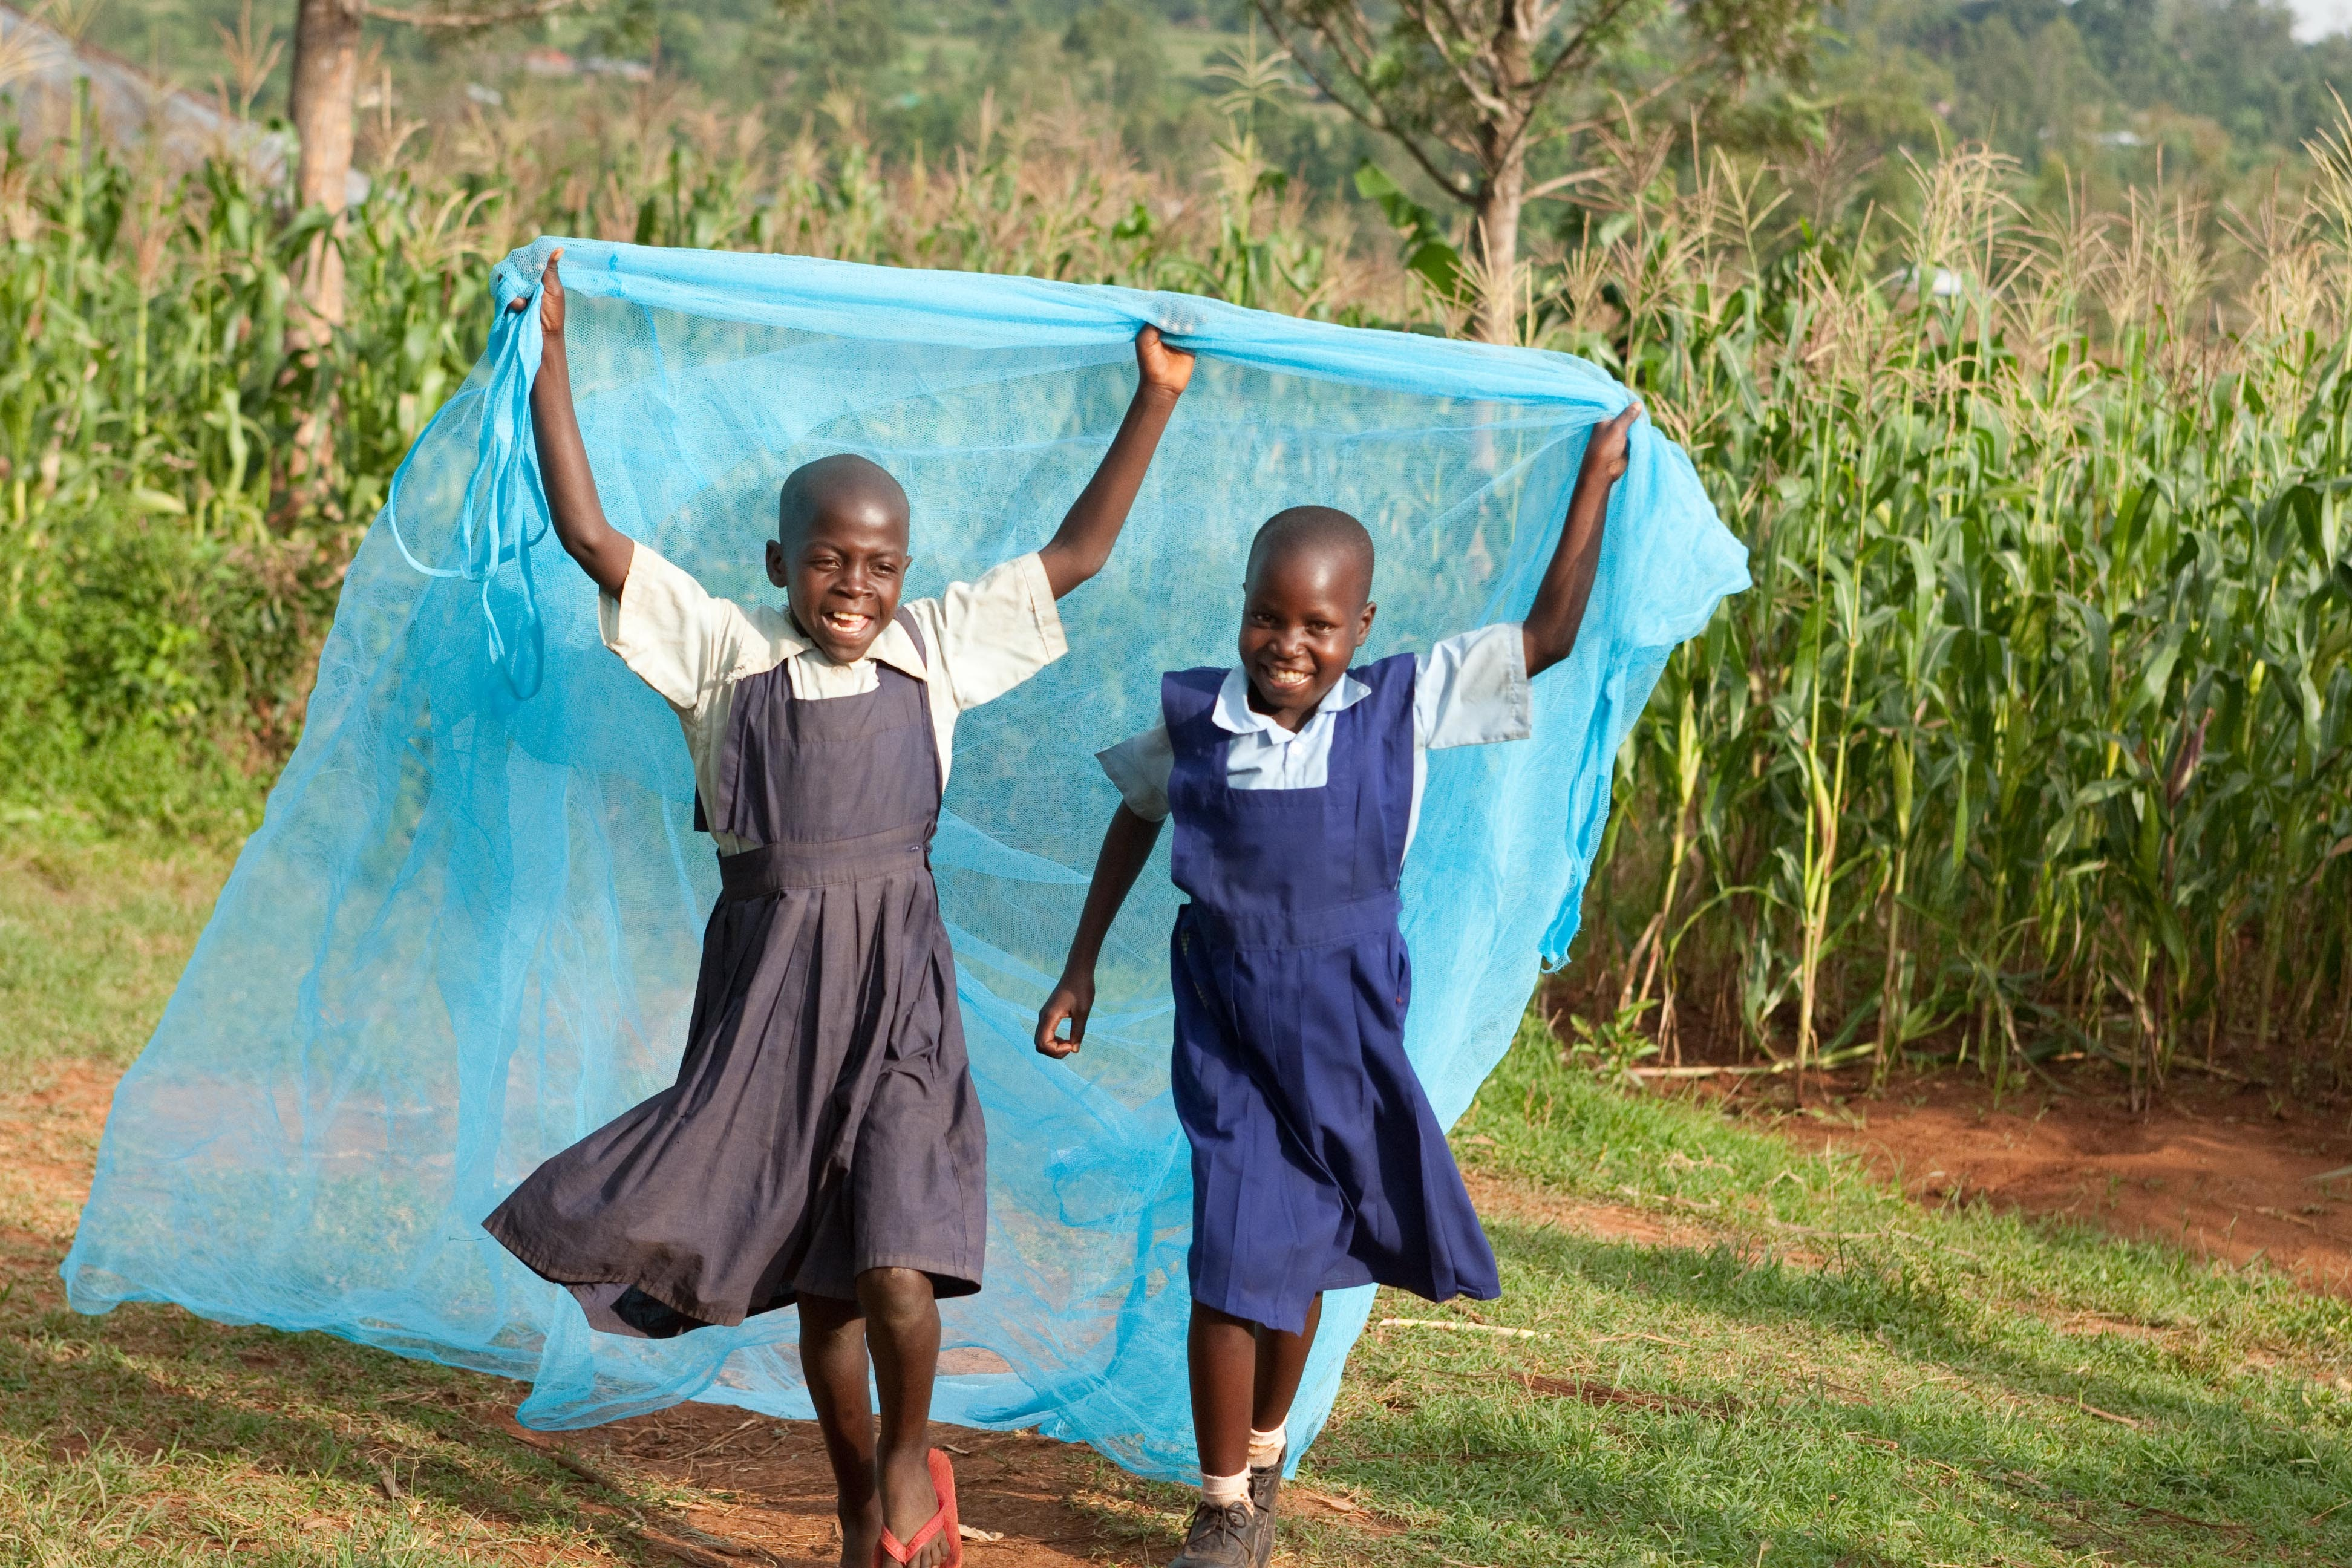 Clementine and Linet Project, Kisumu, Kenya. Clementine Akinyi left and Linet Atieno on right near homes in Ulumbi